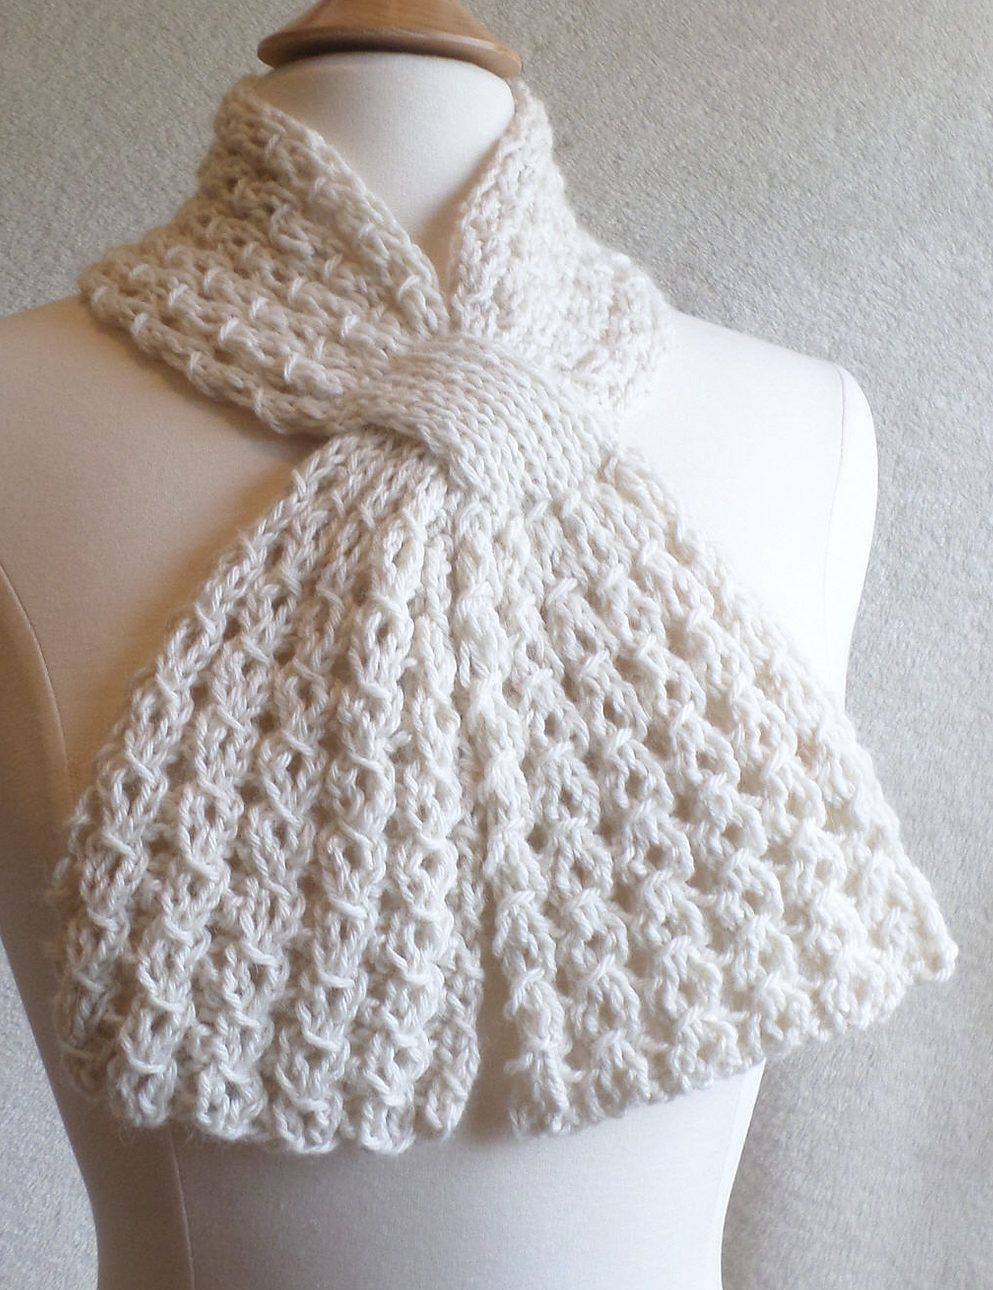 Free knitting pattern for 4 row repeat loopy lace scarf this free knitting pattern for 4 row repeat loopy lace scarf this keyhole scarf features a bankloansurffo Choice Image